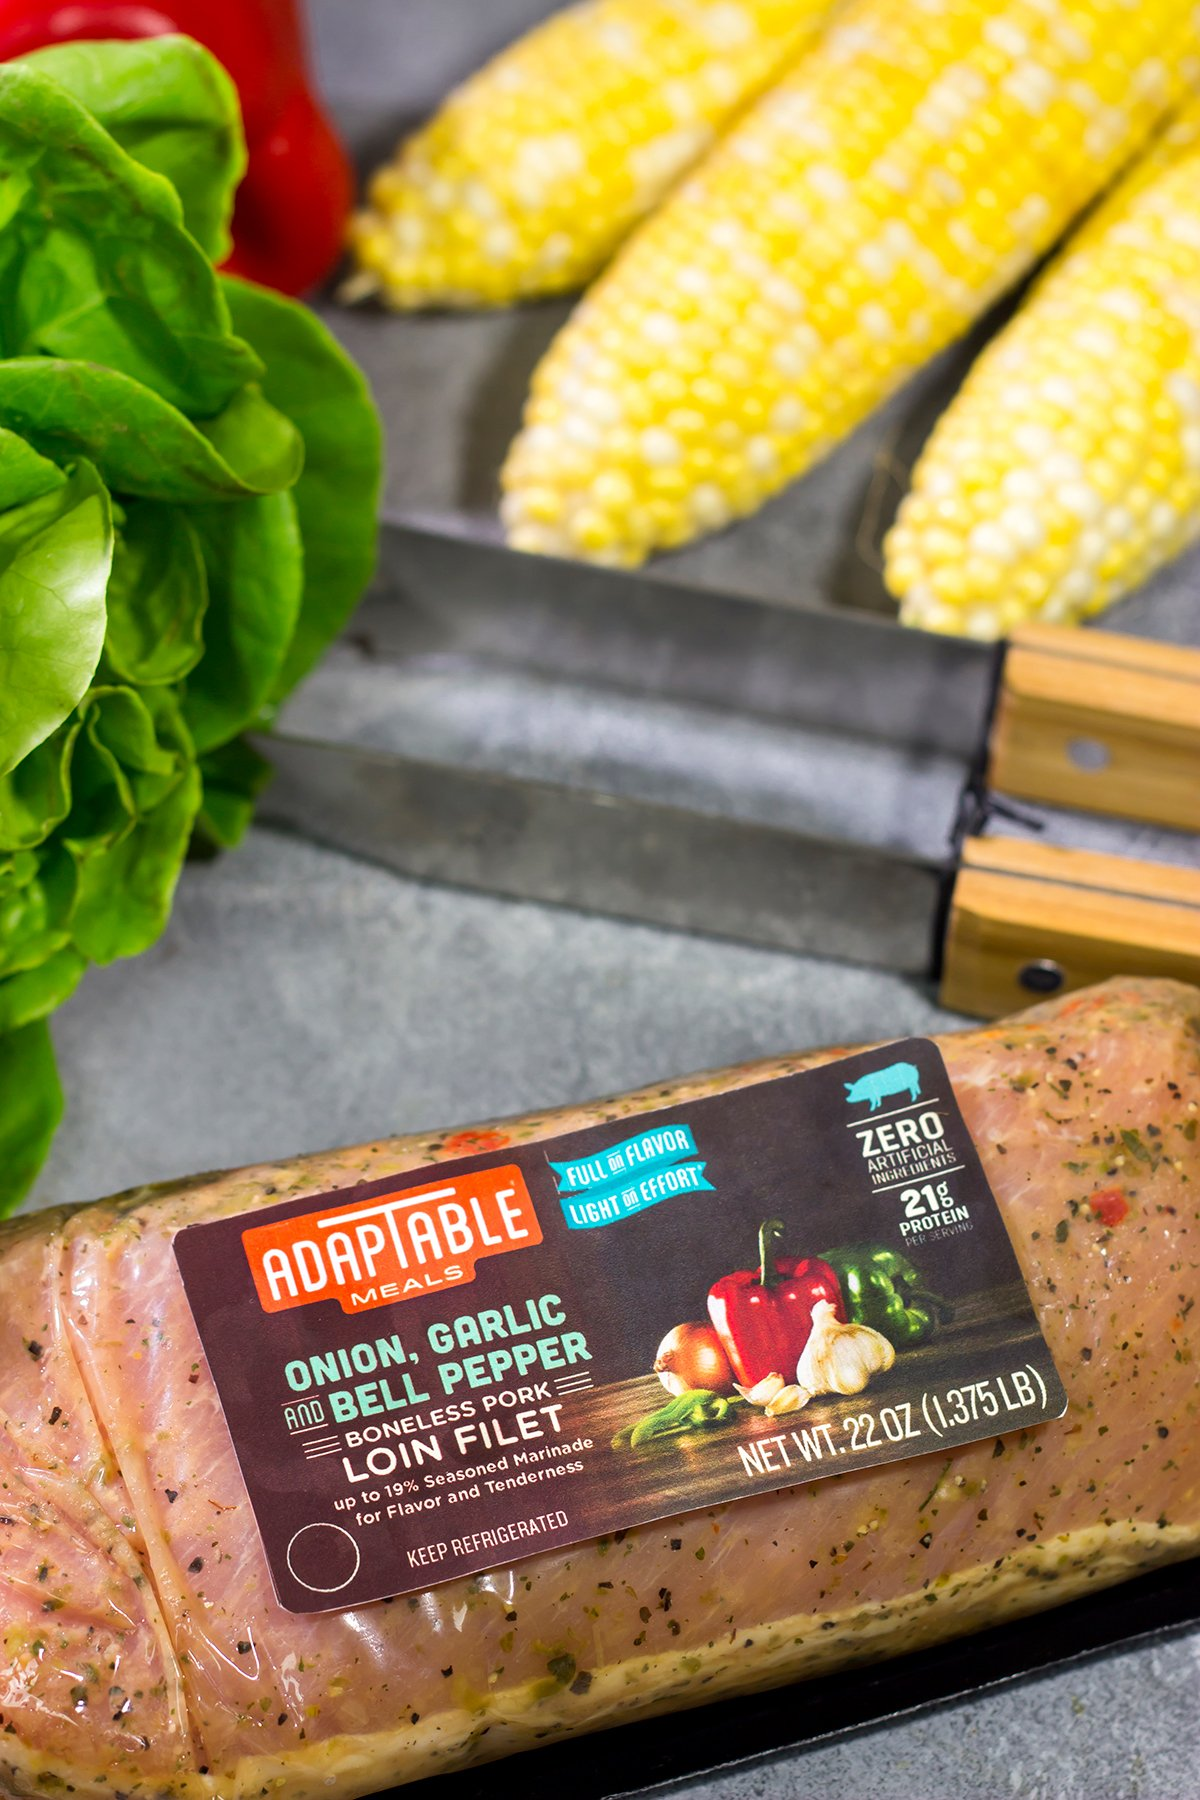 Filled with thinly sliced, marinated pork loin, grilled corn and chopped peppers, these Southwest Pork Lettuce Wraps make for a tasty gameday appetizer or meal!